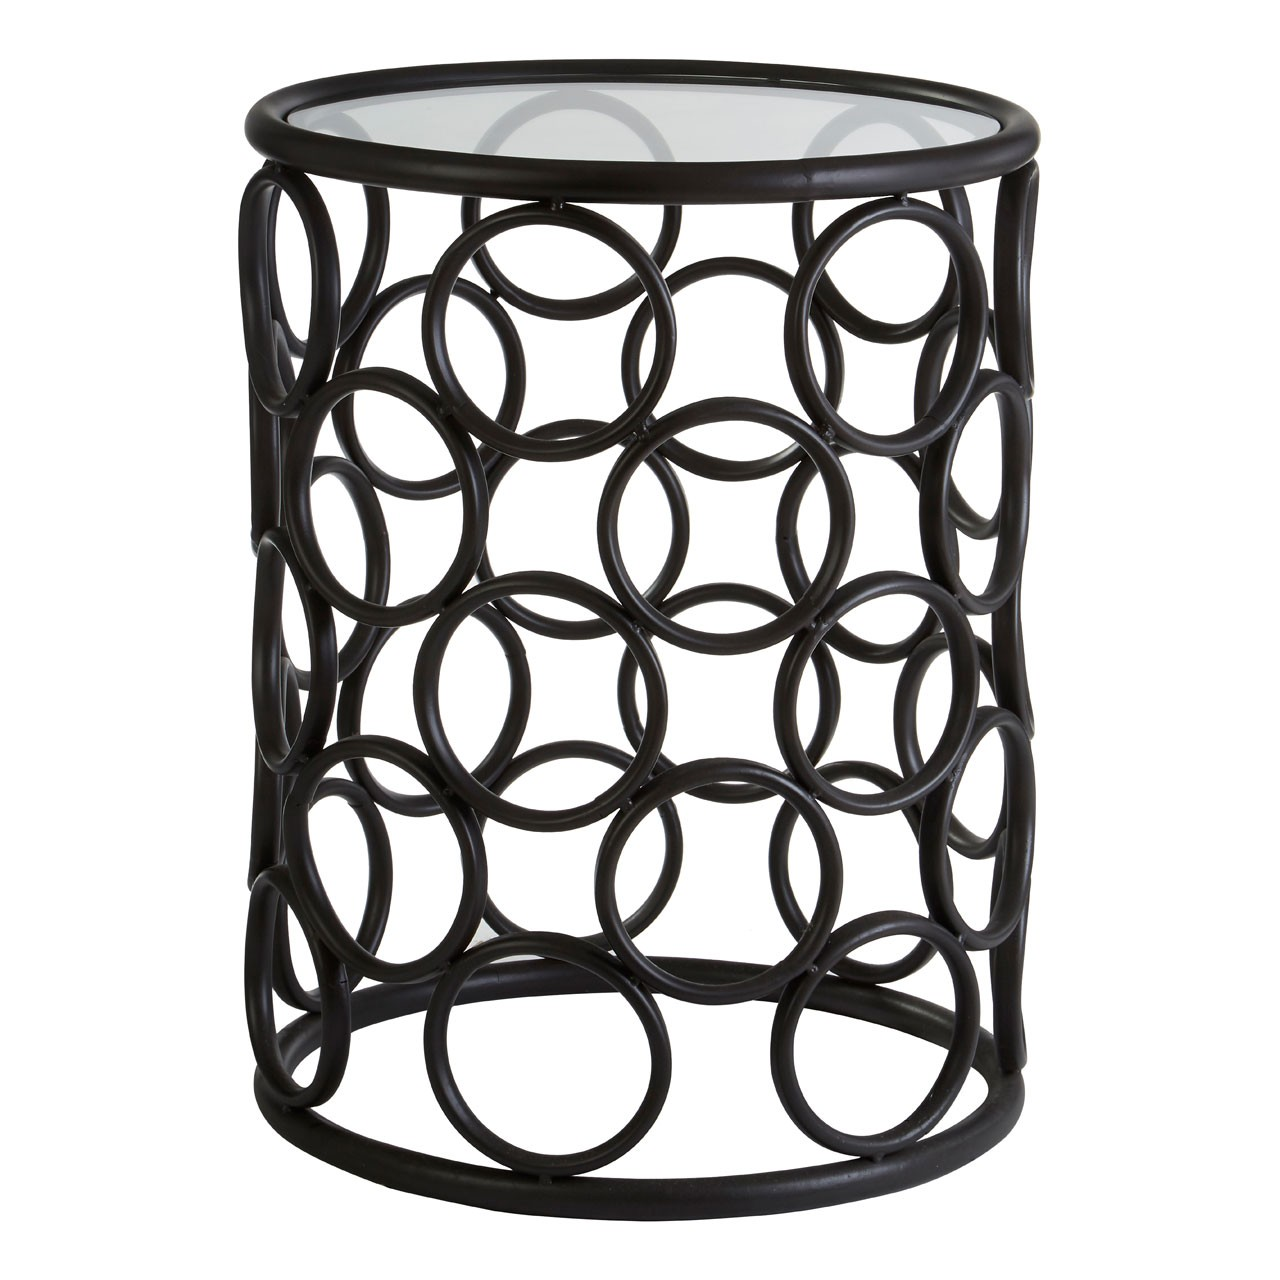 Antalya Round Side Table - Black